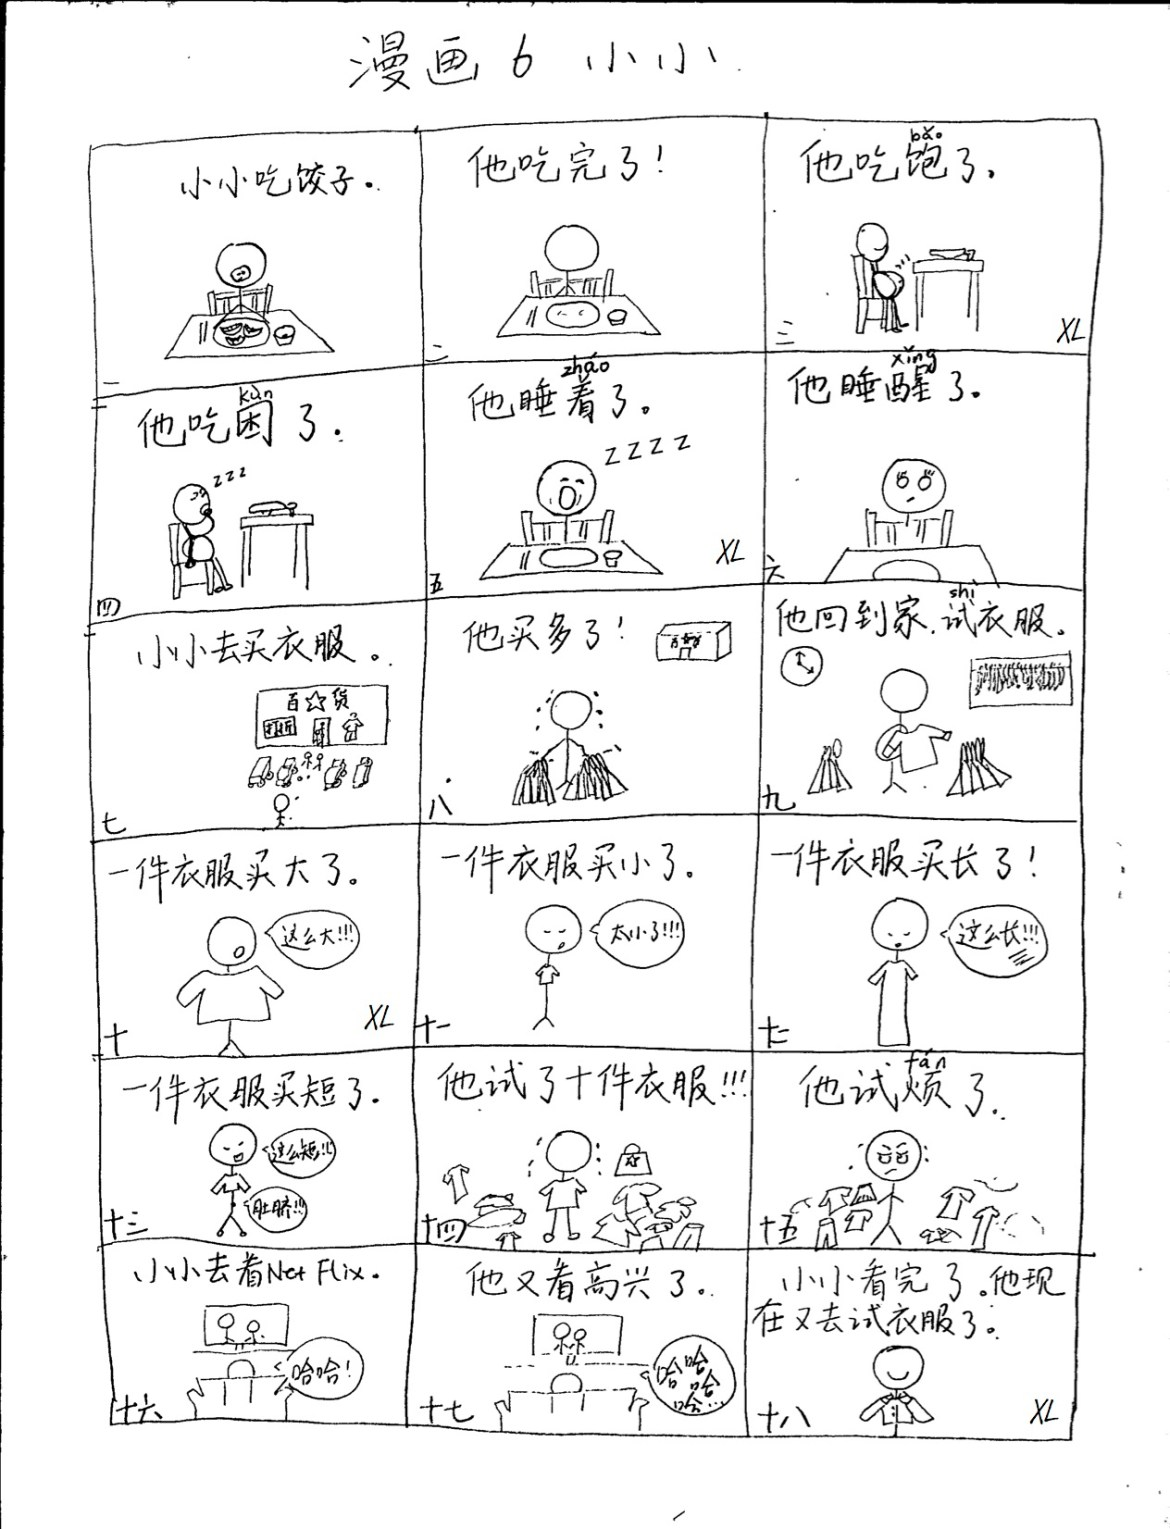 xian_lu_comic_strip_for_cfl_samples